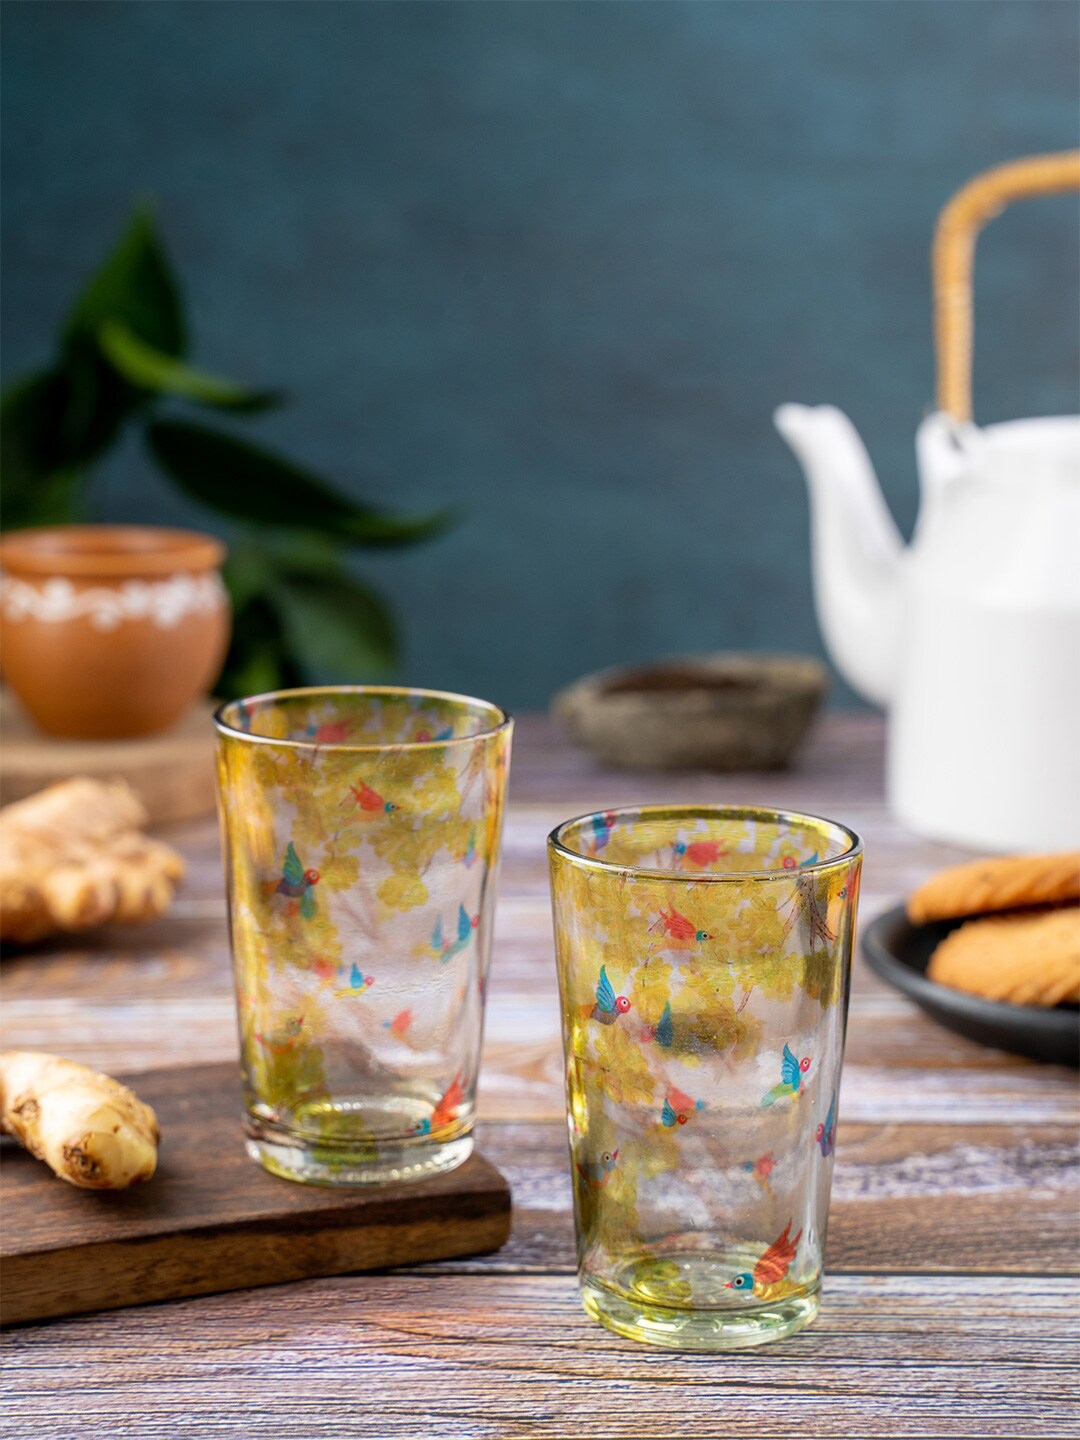 KOLOROBIA 2 Pieces Transparent   Yellow Gond Art Printed Glass Cups Sets